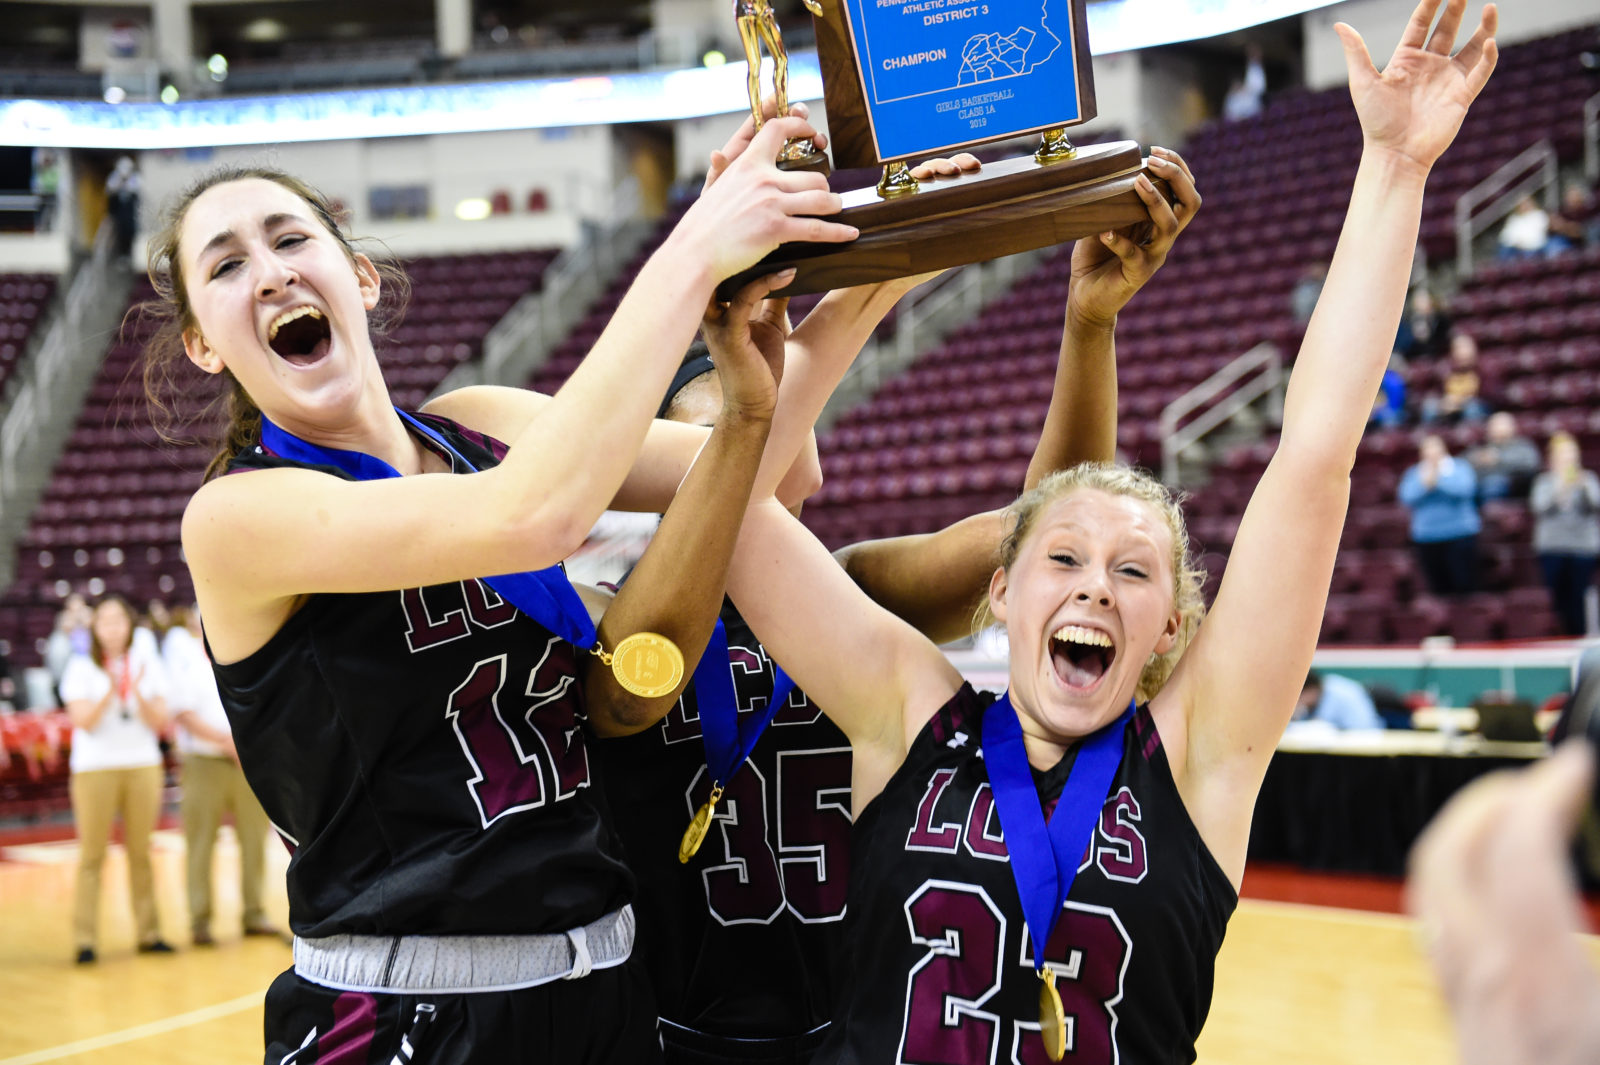 2018-19 District 3 Girls' Championship, McDevitt vs. Lancaster Catholic